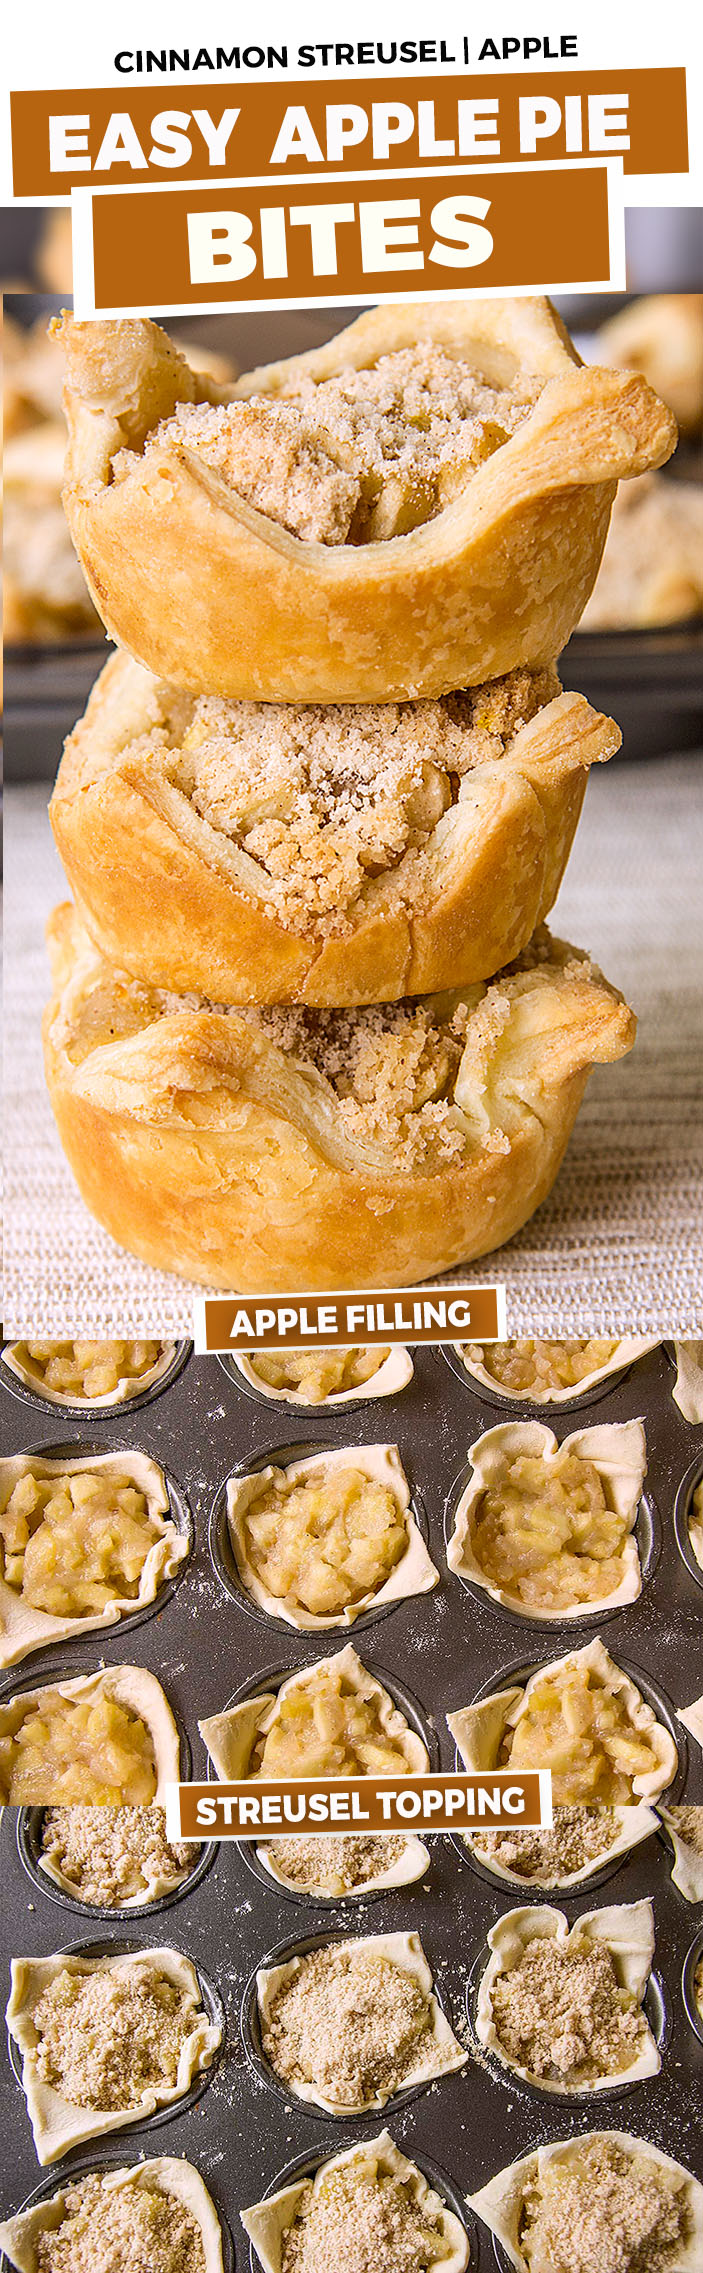 Delicious apple pie bites prepared with crescent rolls, apple pie filling and cinnamon streusel . An easy dessert in under 30 minutes!